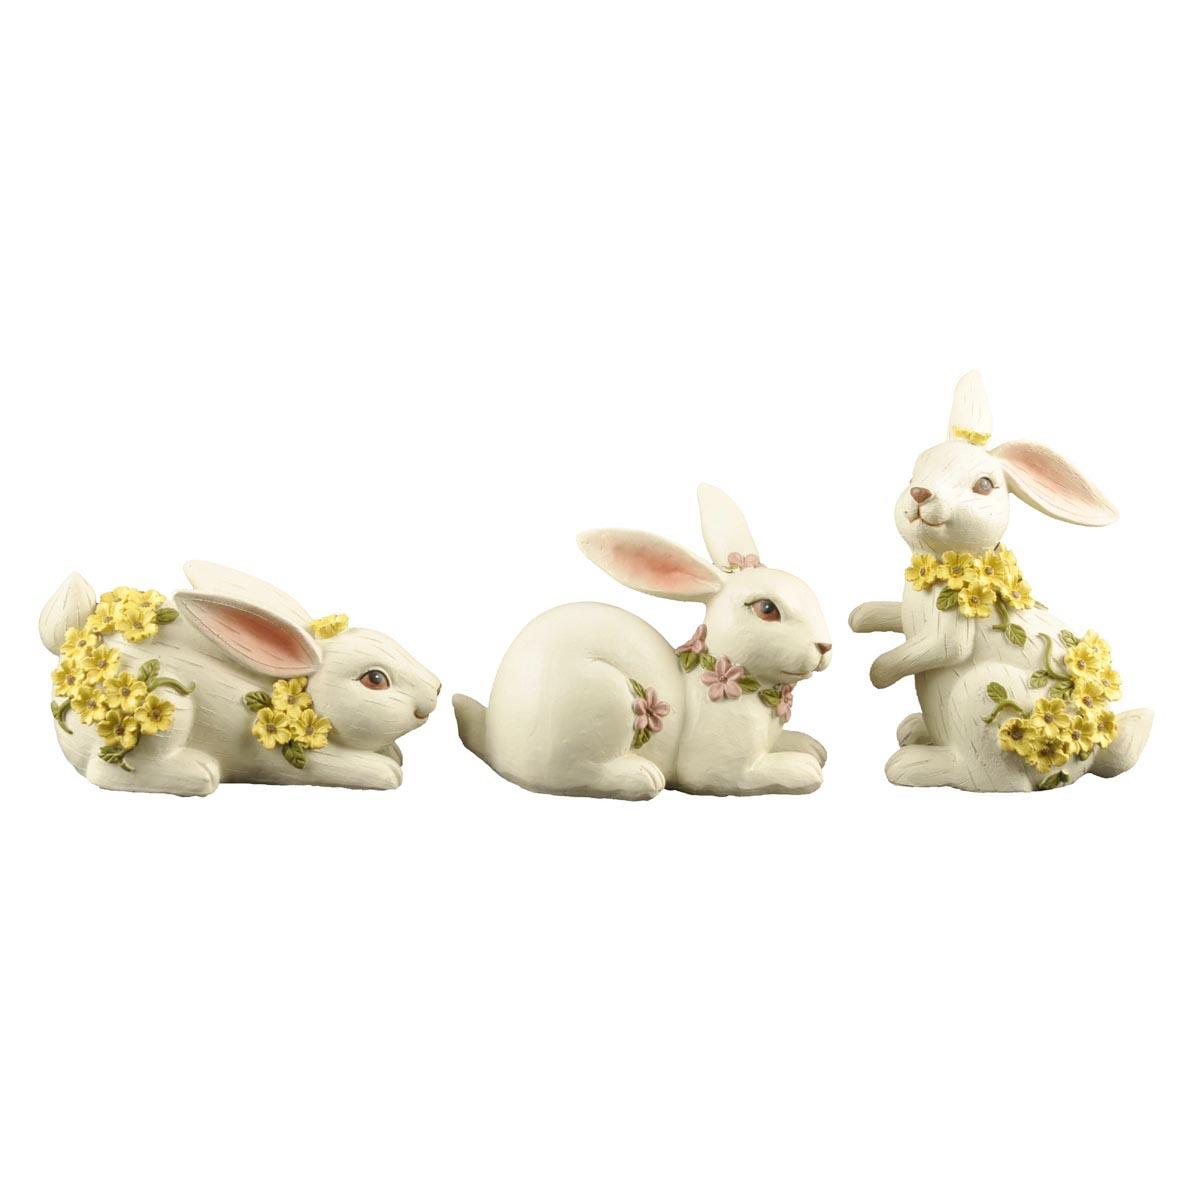 Custom Different Poses Garden Resin Easter Long Ear Rabbit Statues